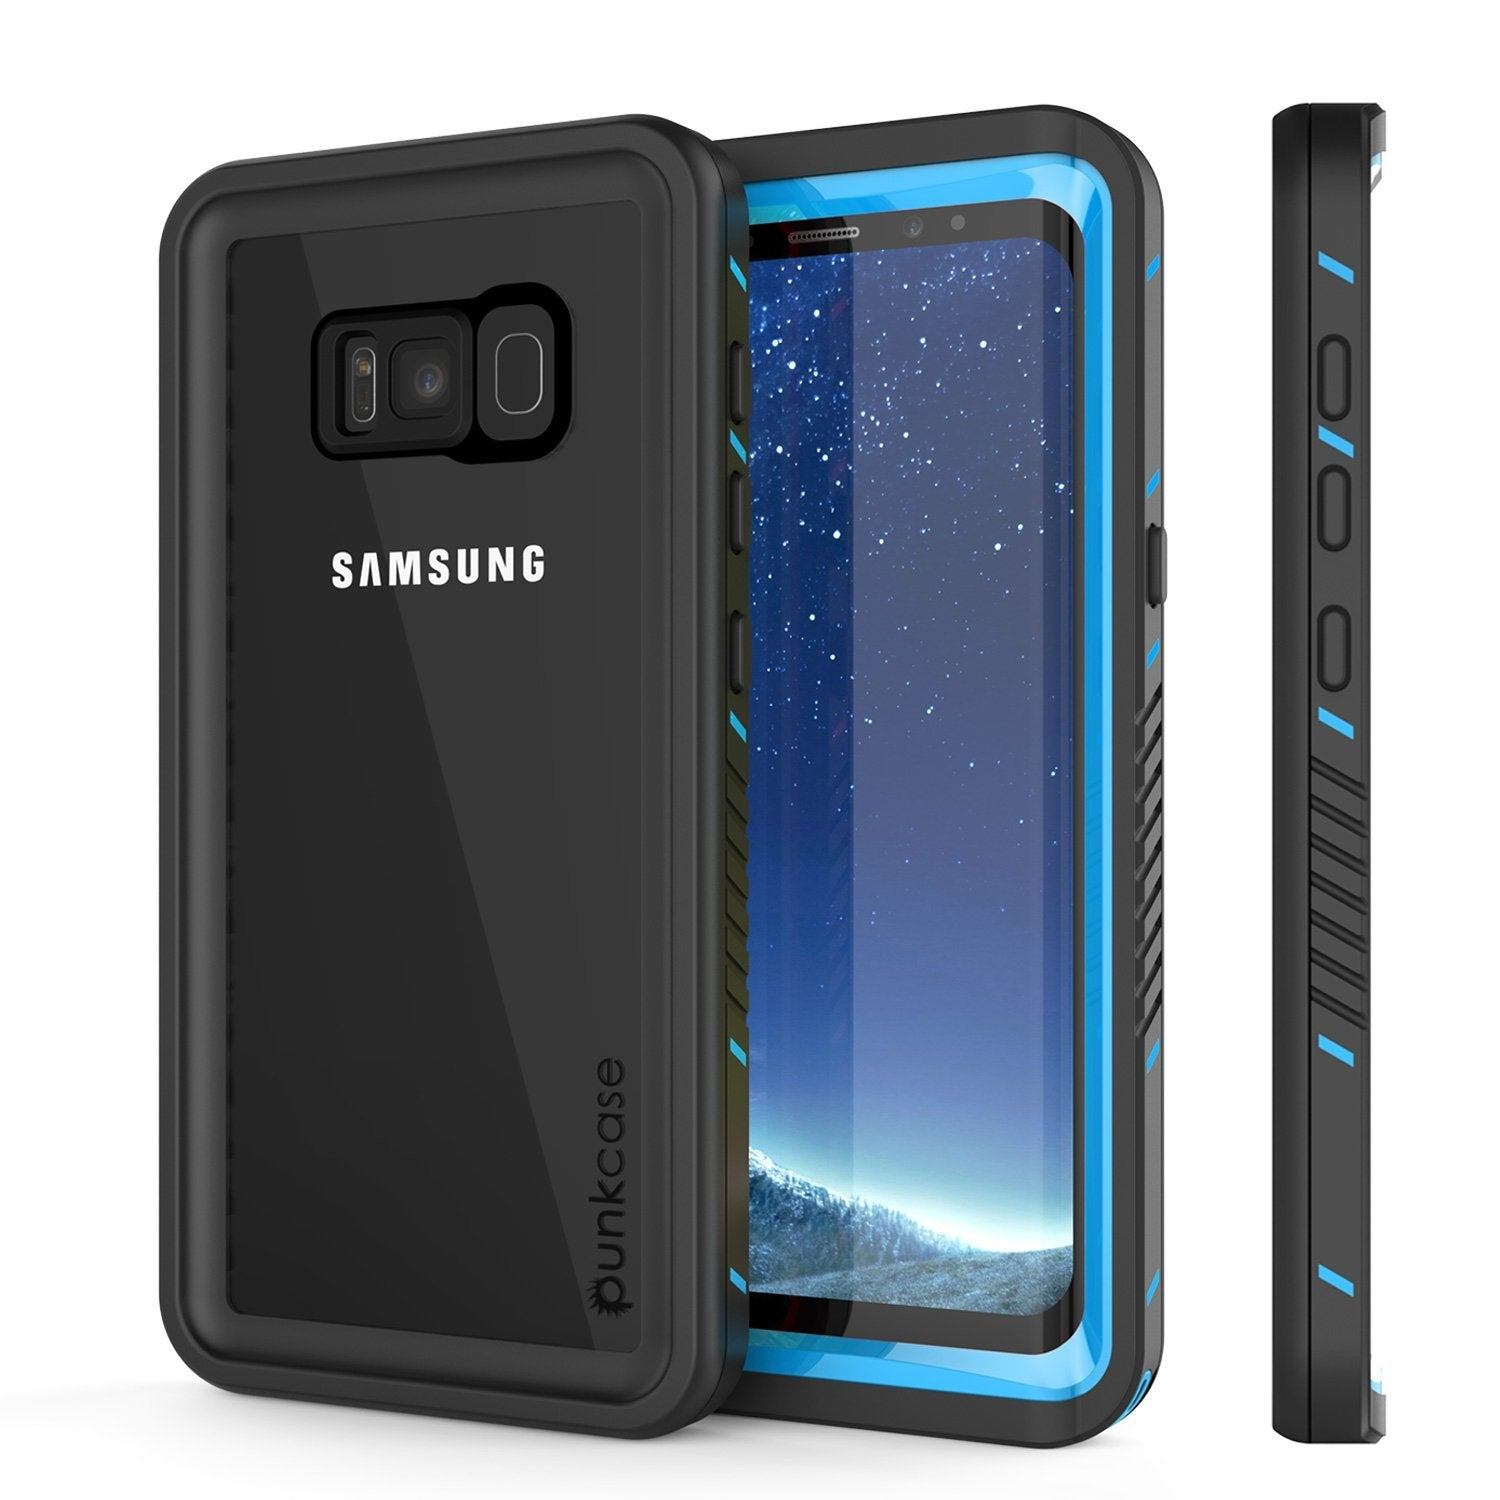 Galaxy S8 PLUS Waterproof Case, Punkcase [Extreme Series] [Slim Fit] [IP68 Certified] Built In Screen Protector [Light Blue]